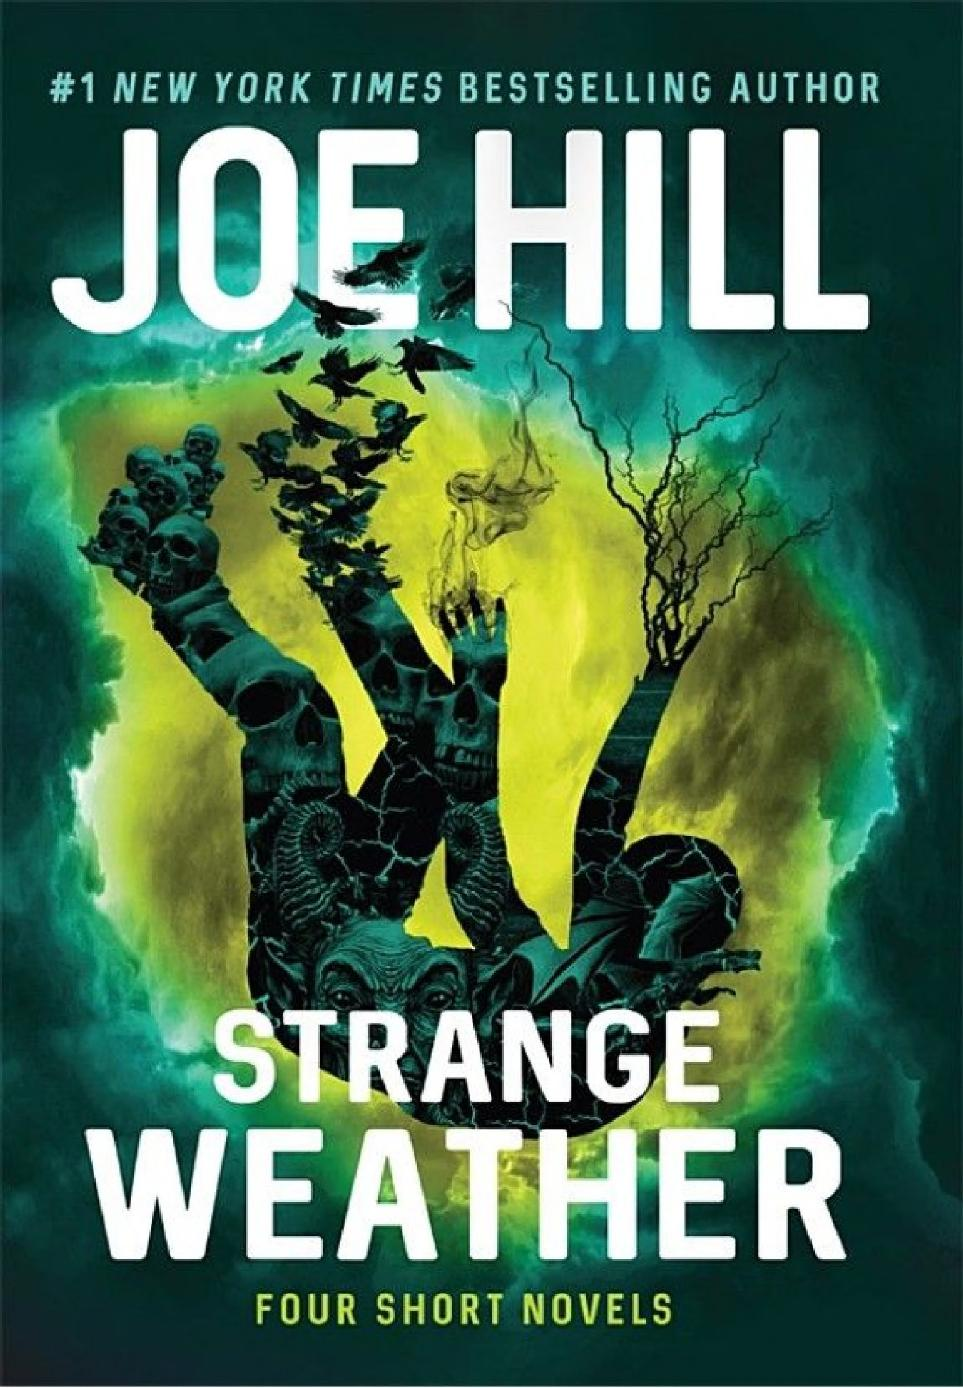 Strange Weather: Four Short Novels - Joe Hill [kindle] [mobi]